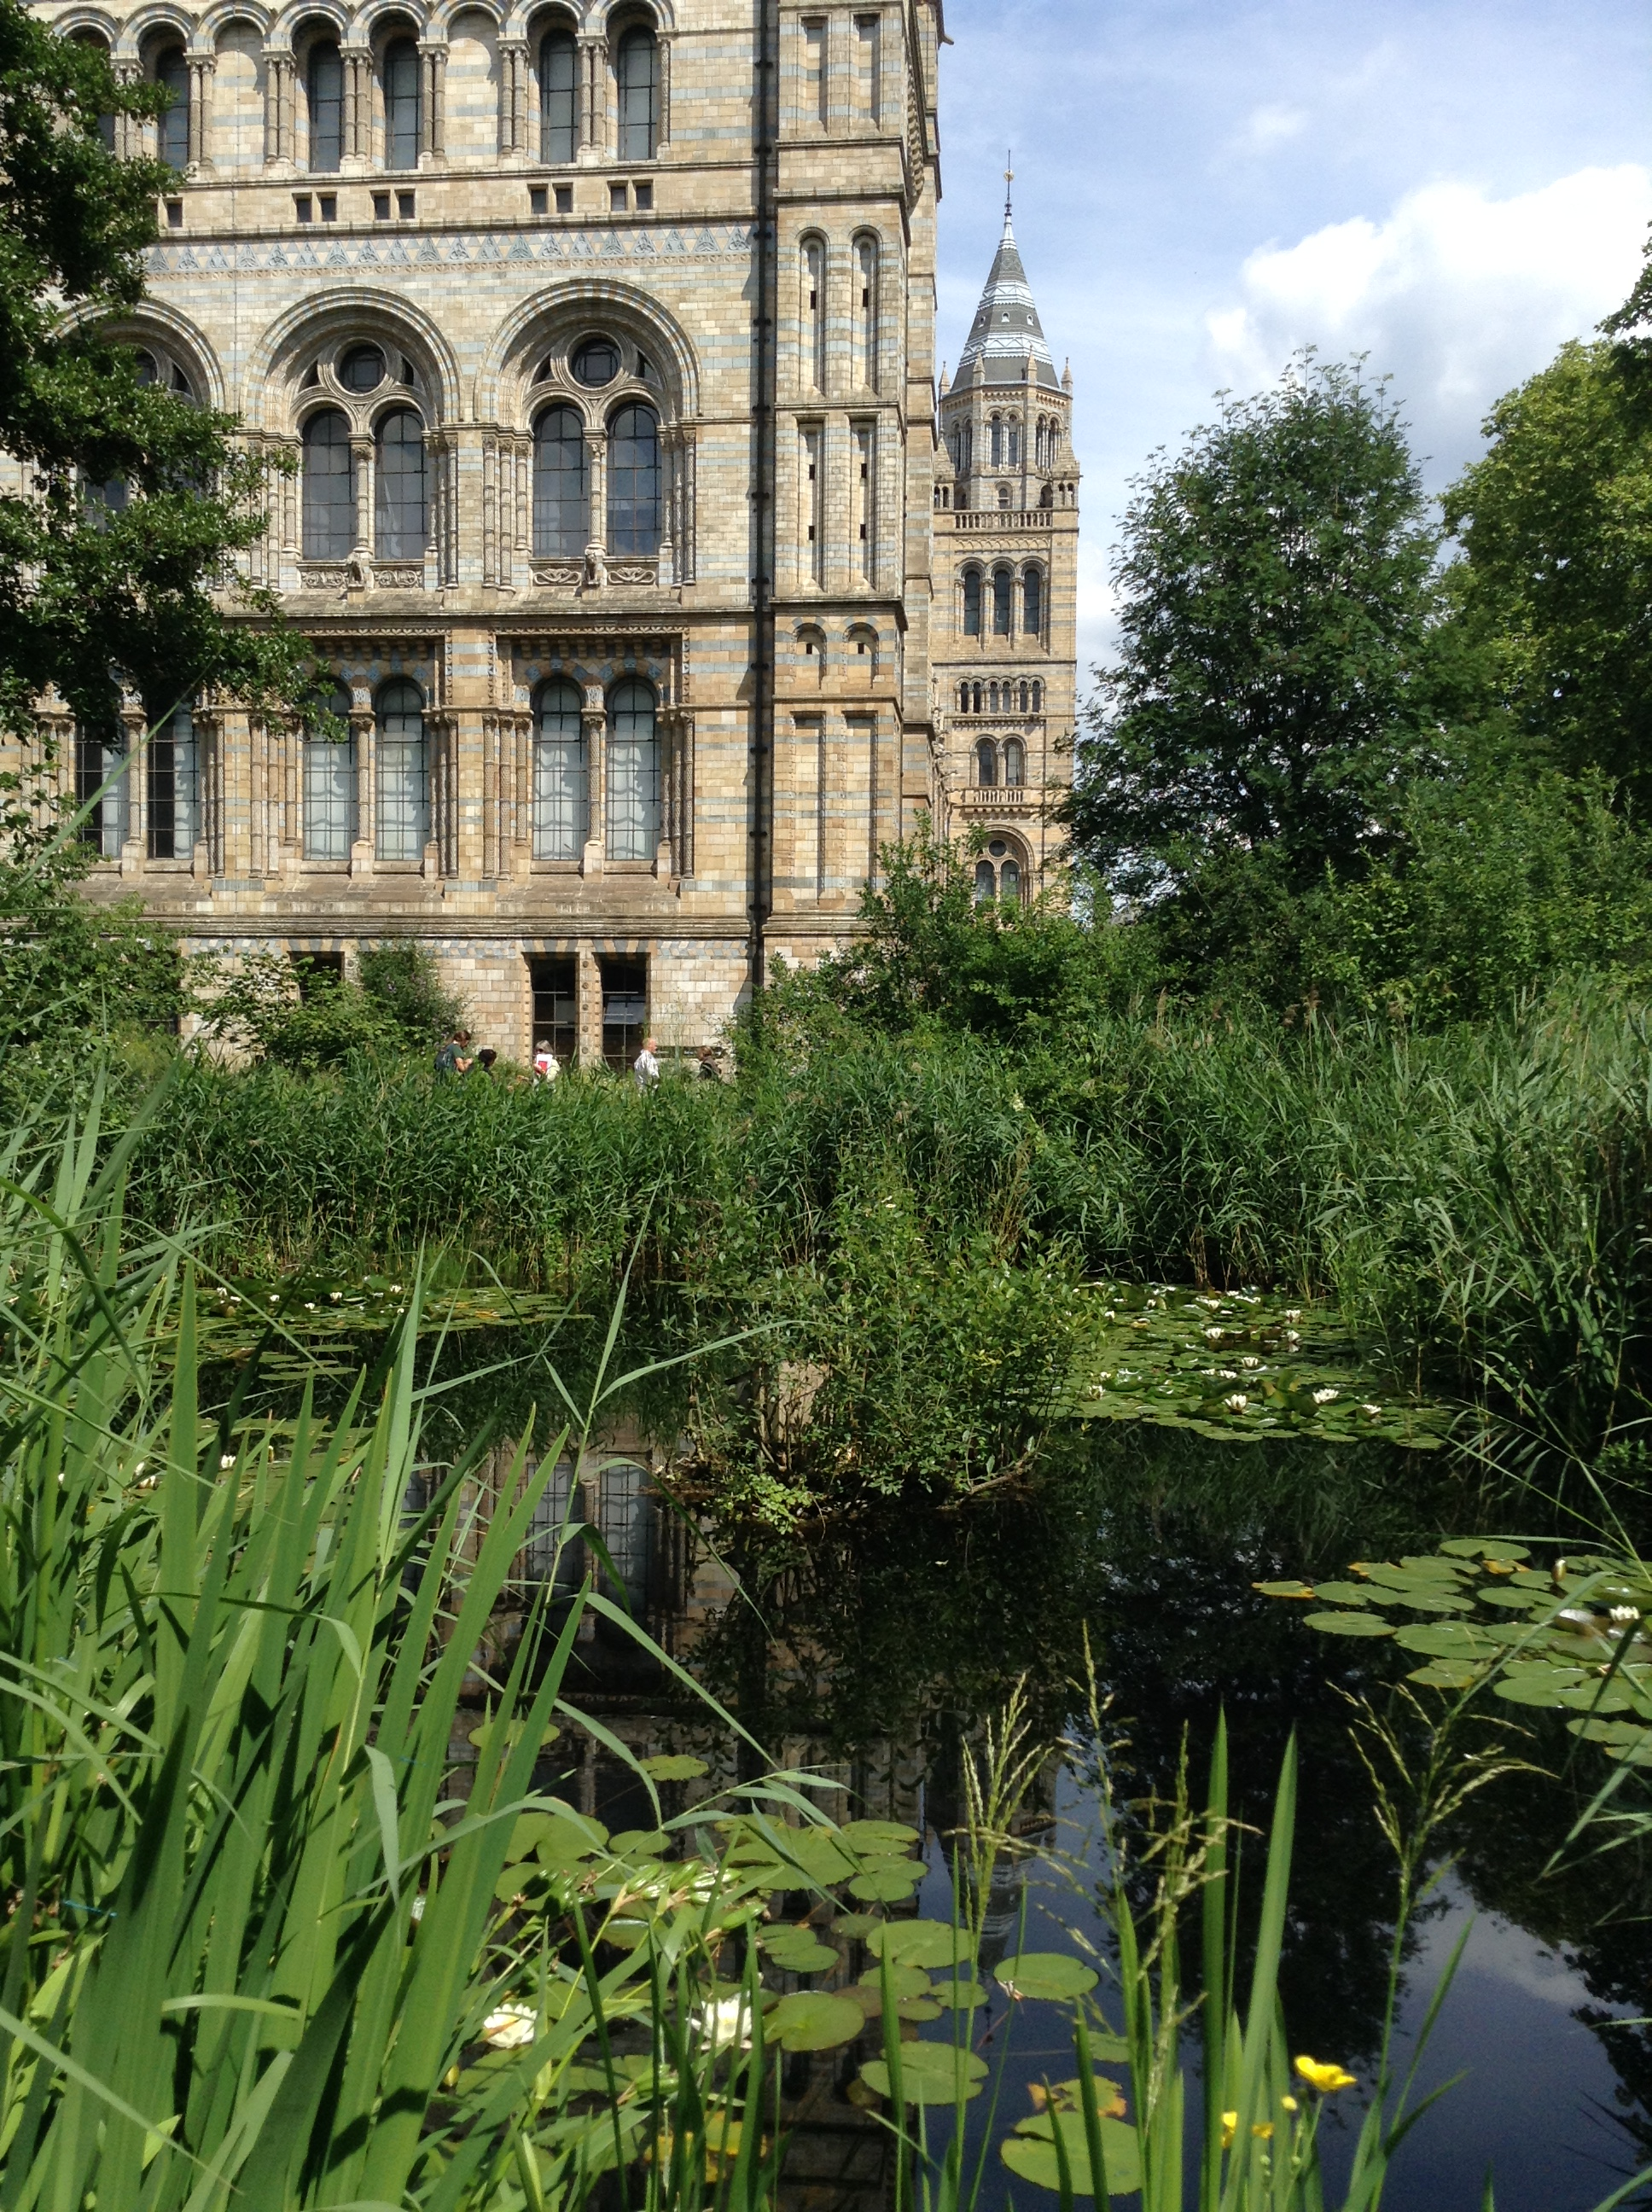 Natural History Museum Wildlife Garden (Wildlife Gardening Forum soil biodiversity conference visible in the distance)